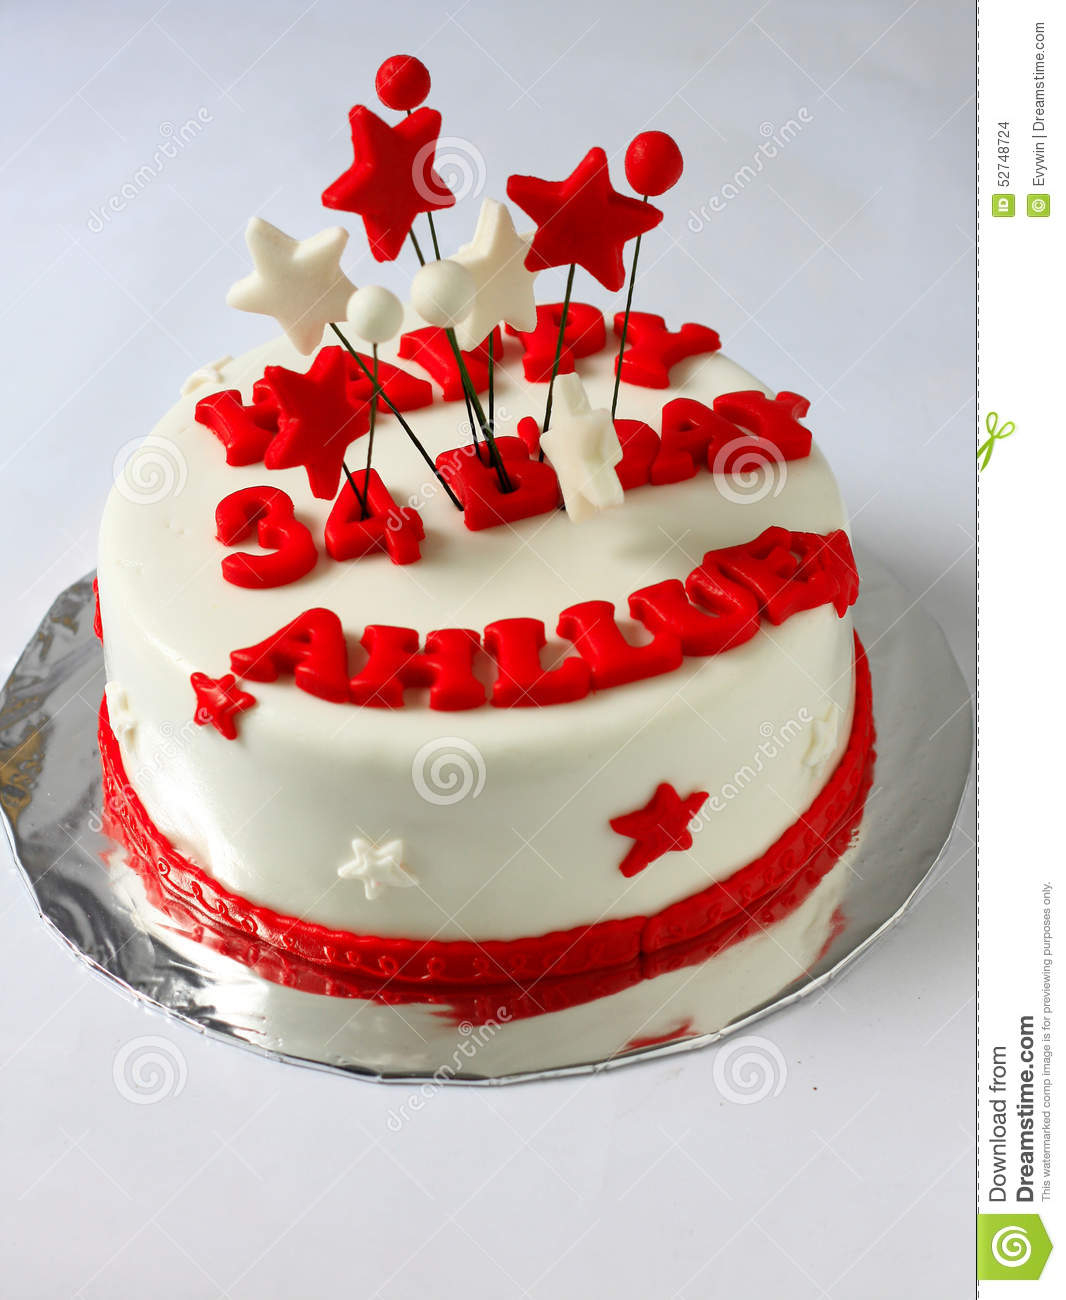 Red Birthday Cake Fondant Birthday Cake Cake Stock Photo Image Of Hearts 52748724